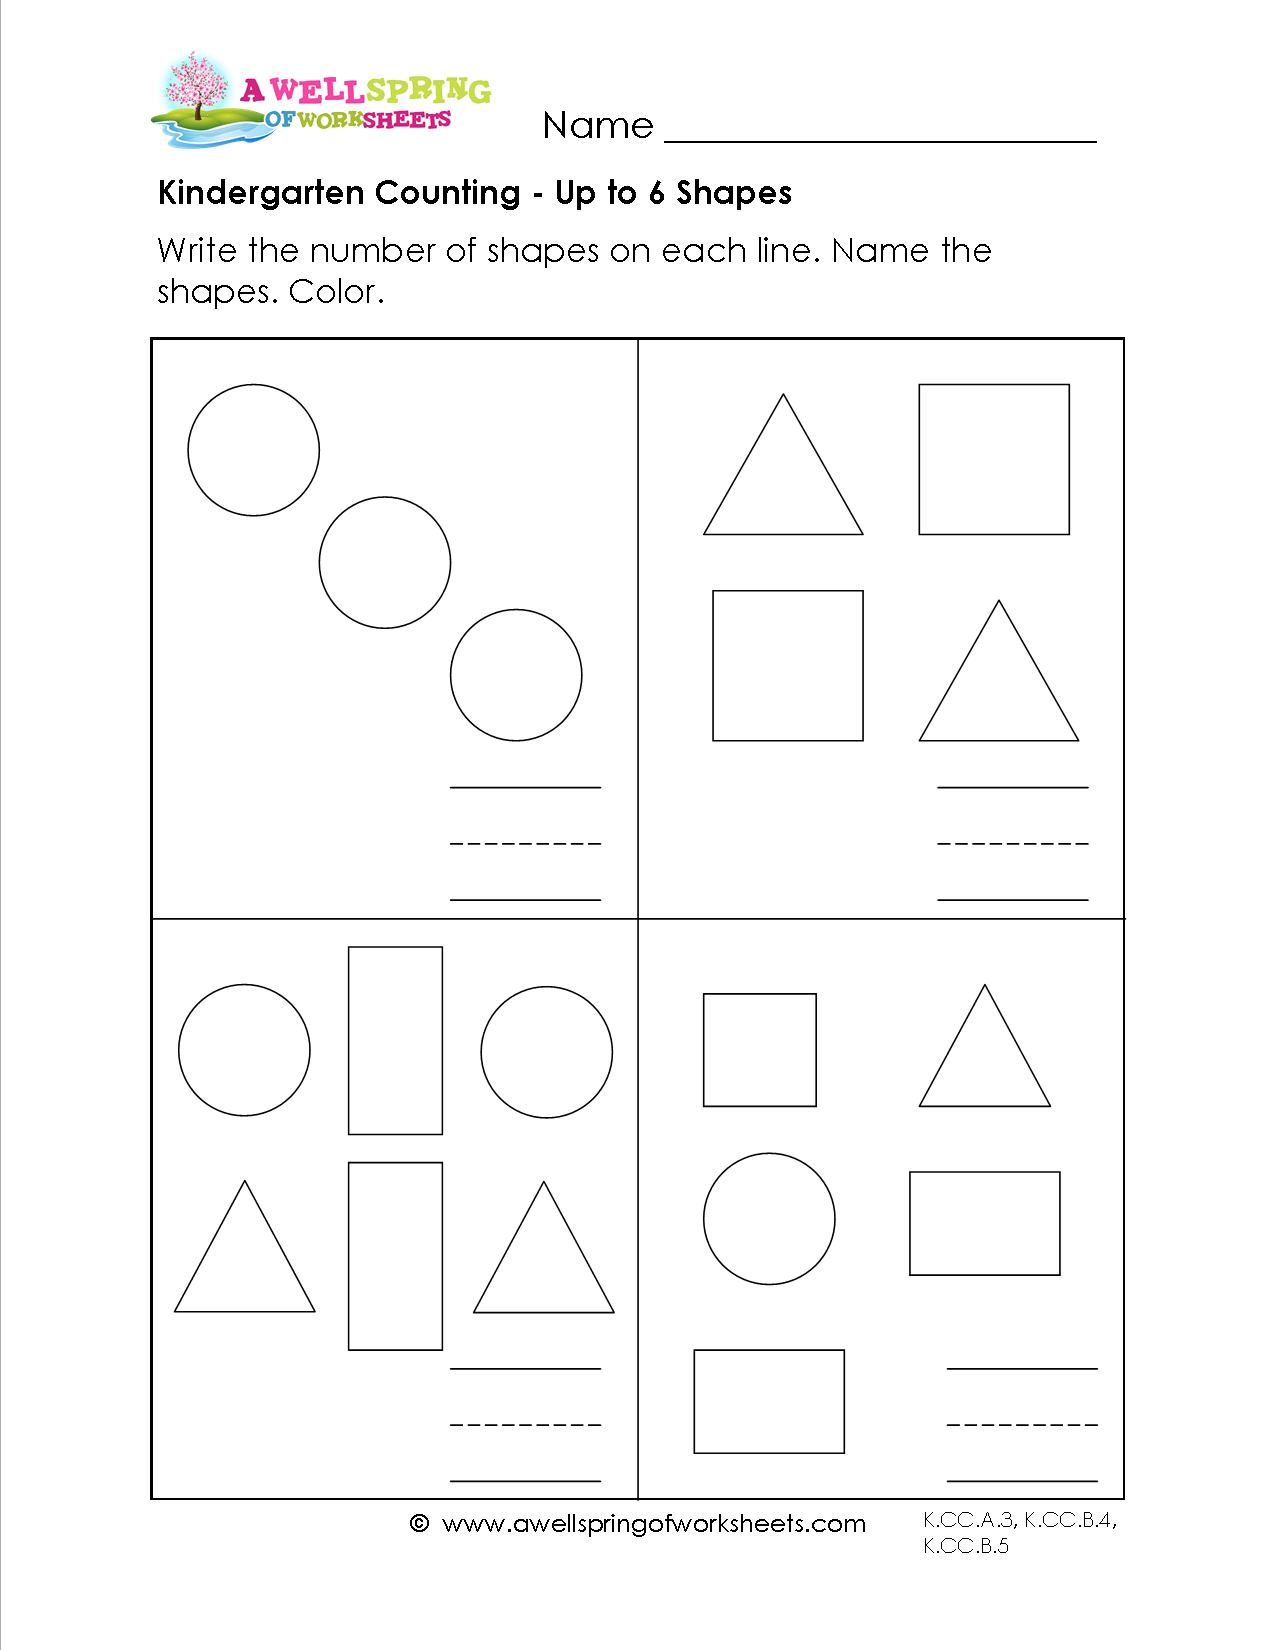 Kindergarten Counting Shapes In these 10 counting worksheets